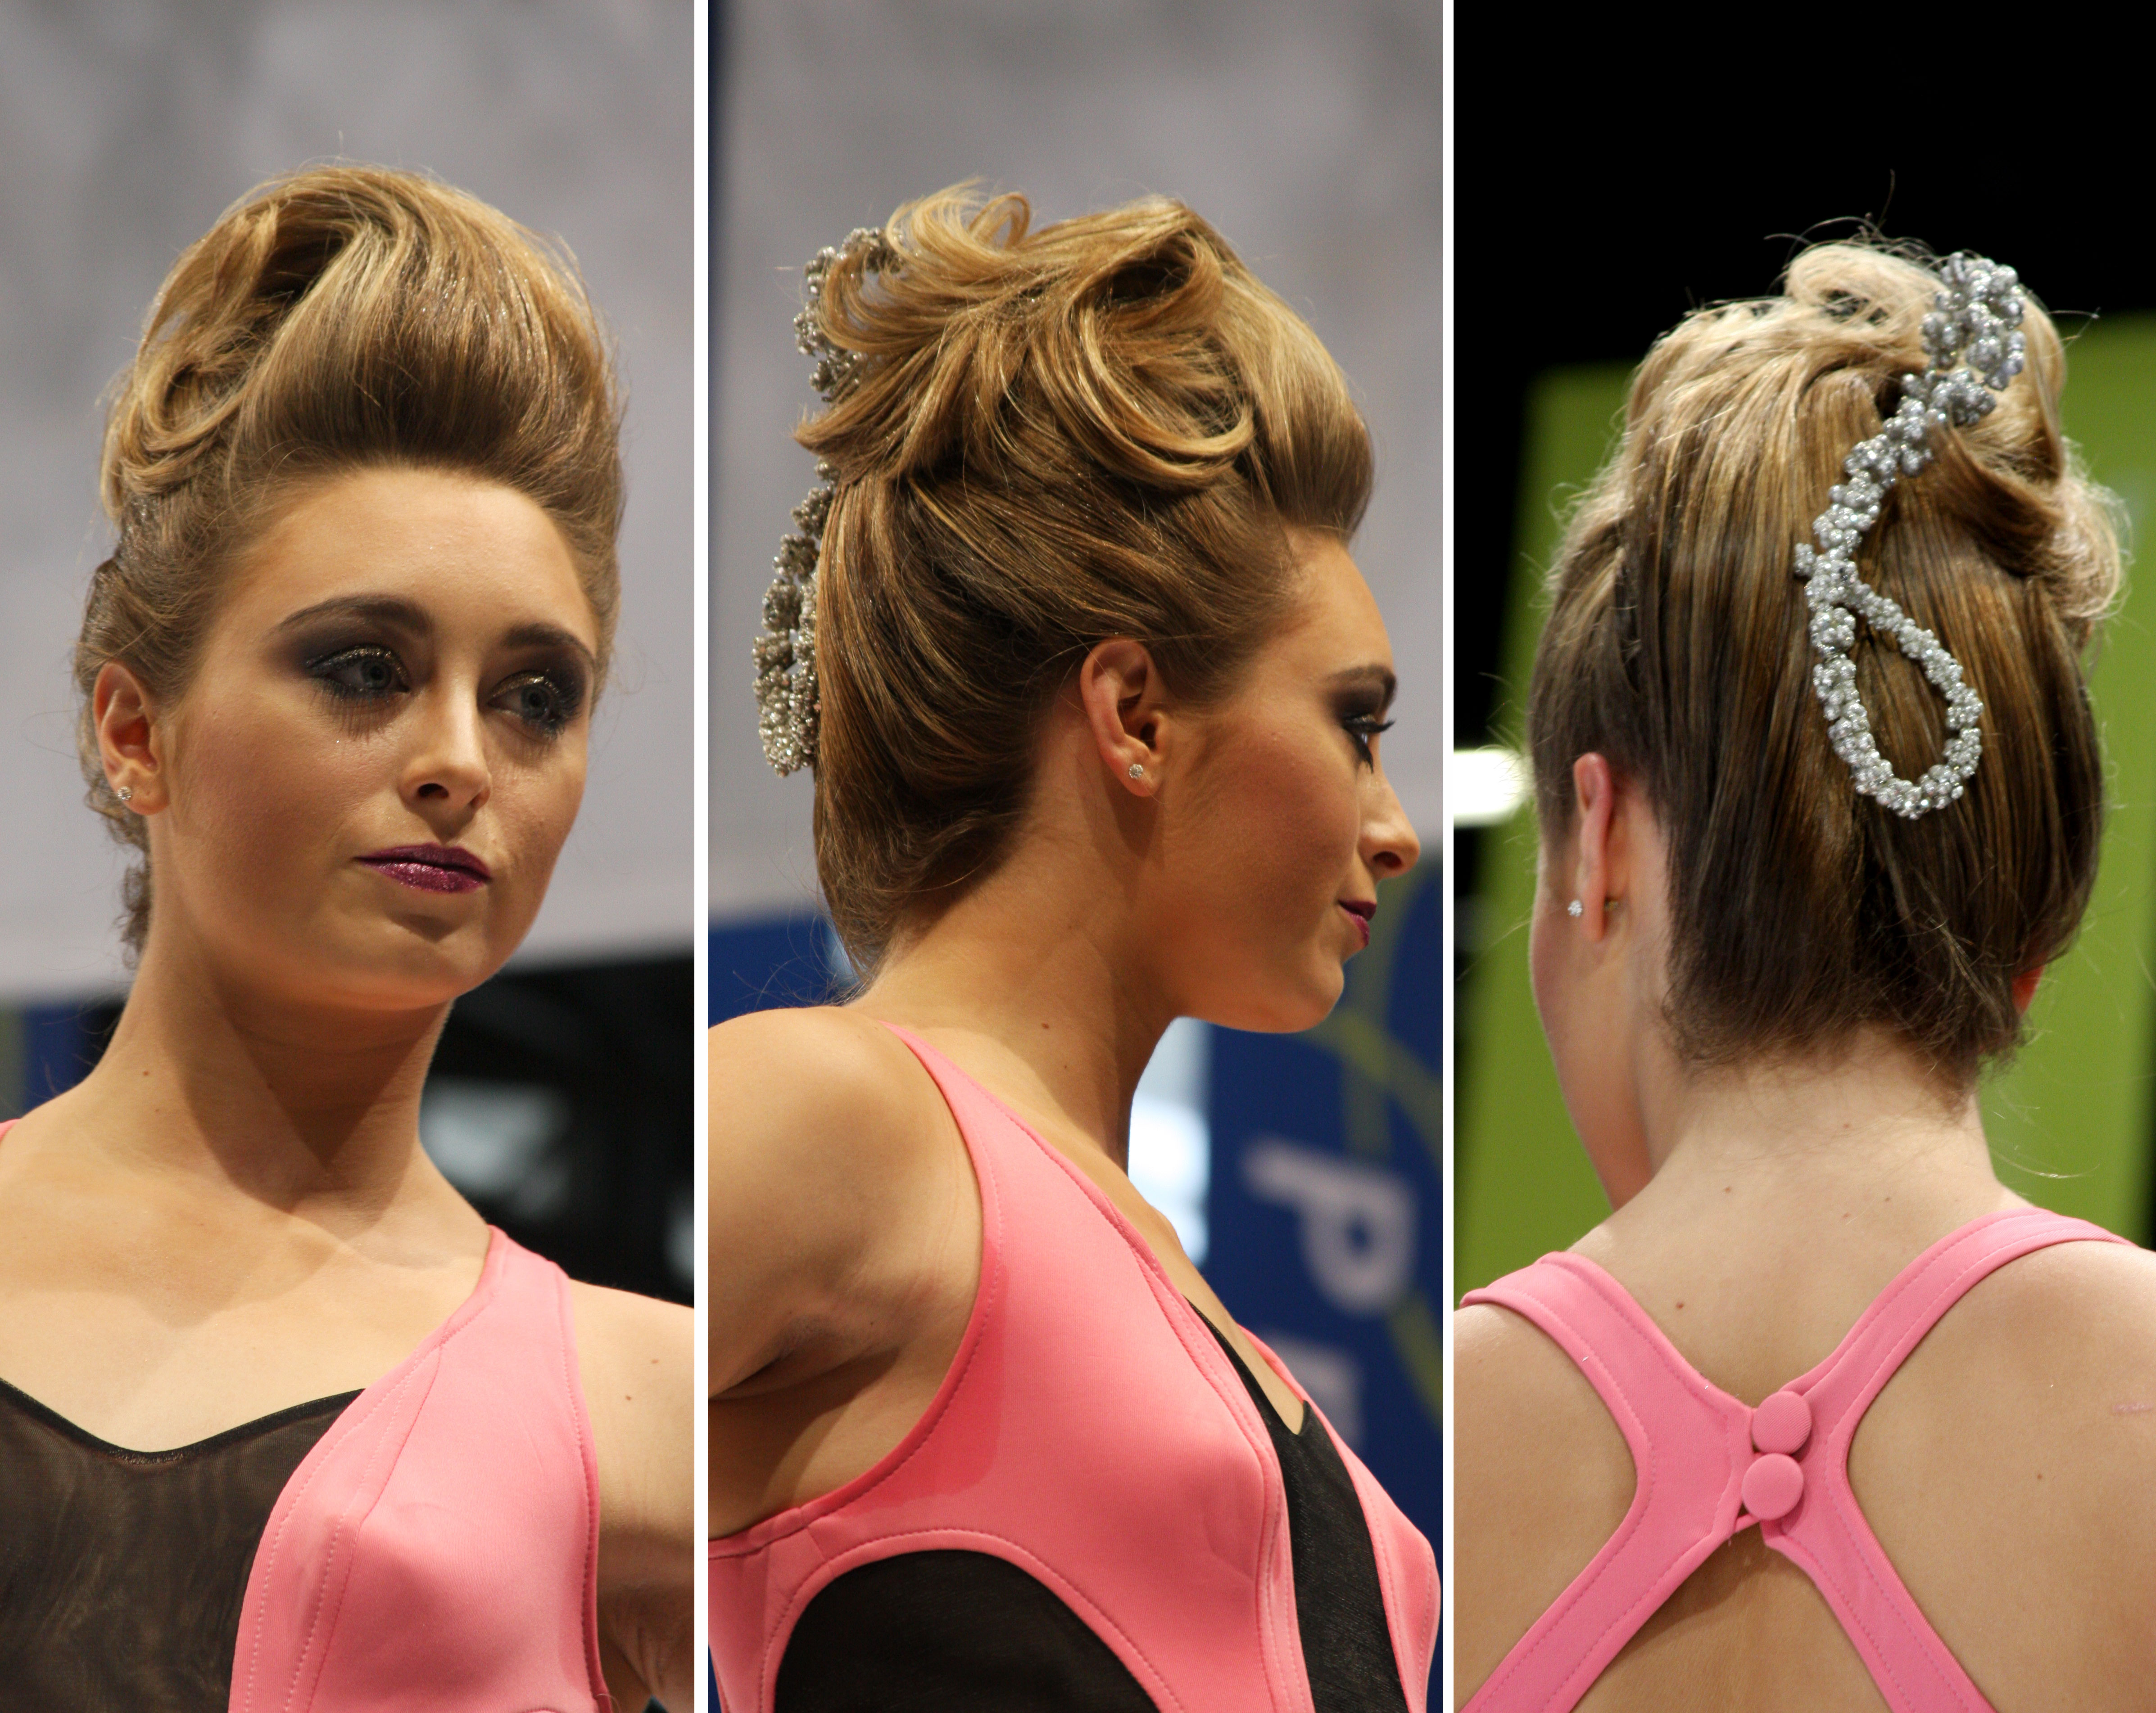 HOW-TO: Headliner William De Ridder's Short Cuts and Formal Beehive Styles at America's Beauty Show